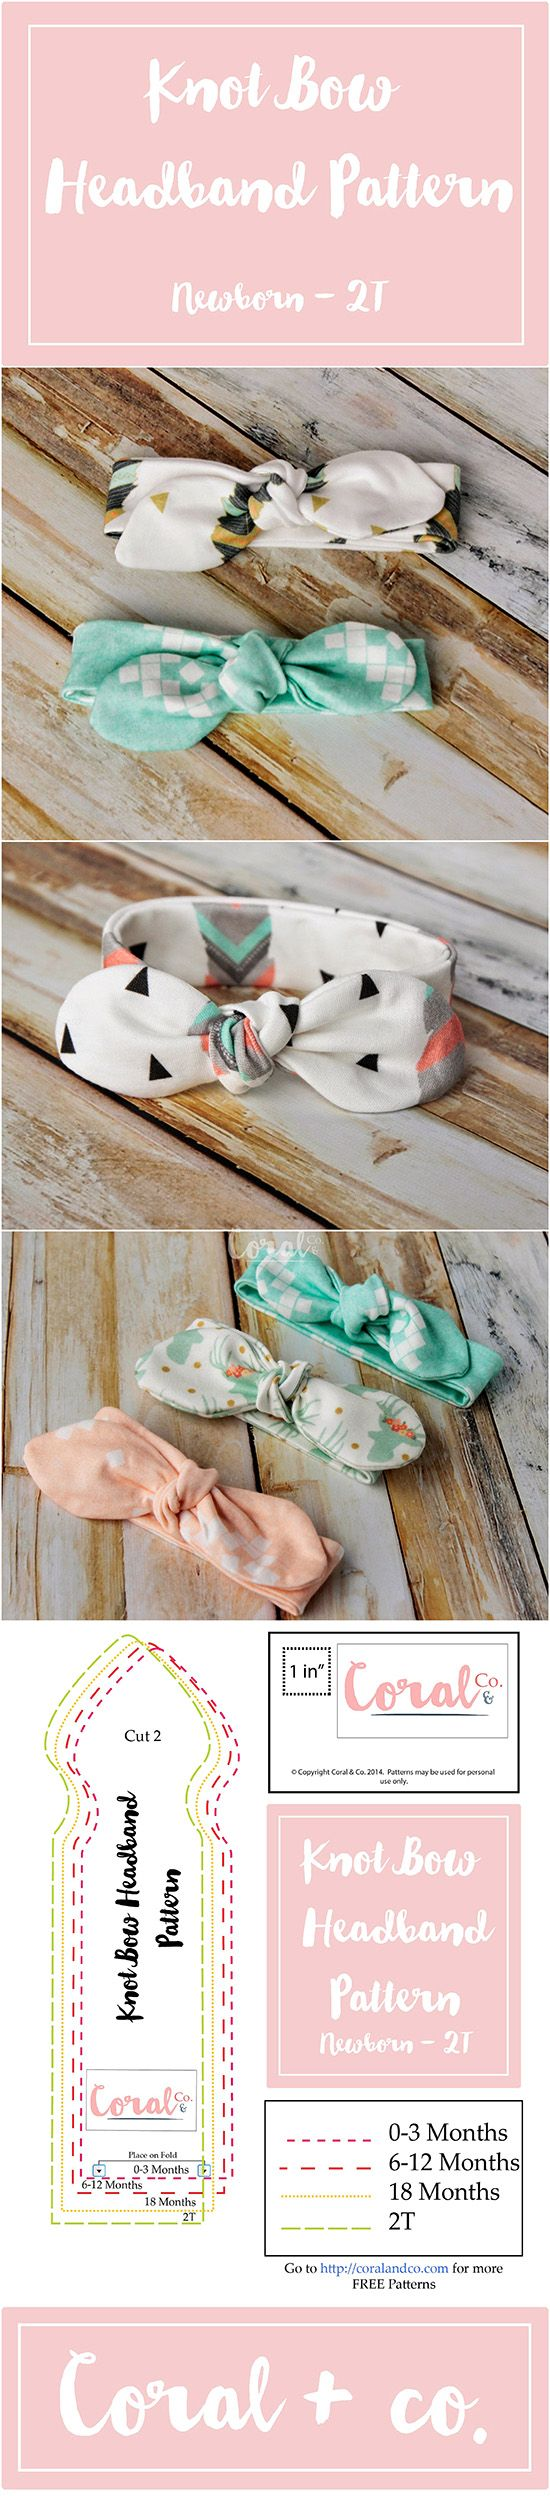 Looking for an adorable baby gift? Try your hand at DIY knotted-bow headbands for babies. Click in to easily download BlogHer's instructions on this quick and simple DIY project.